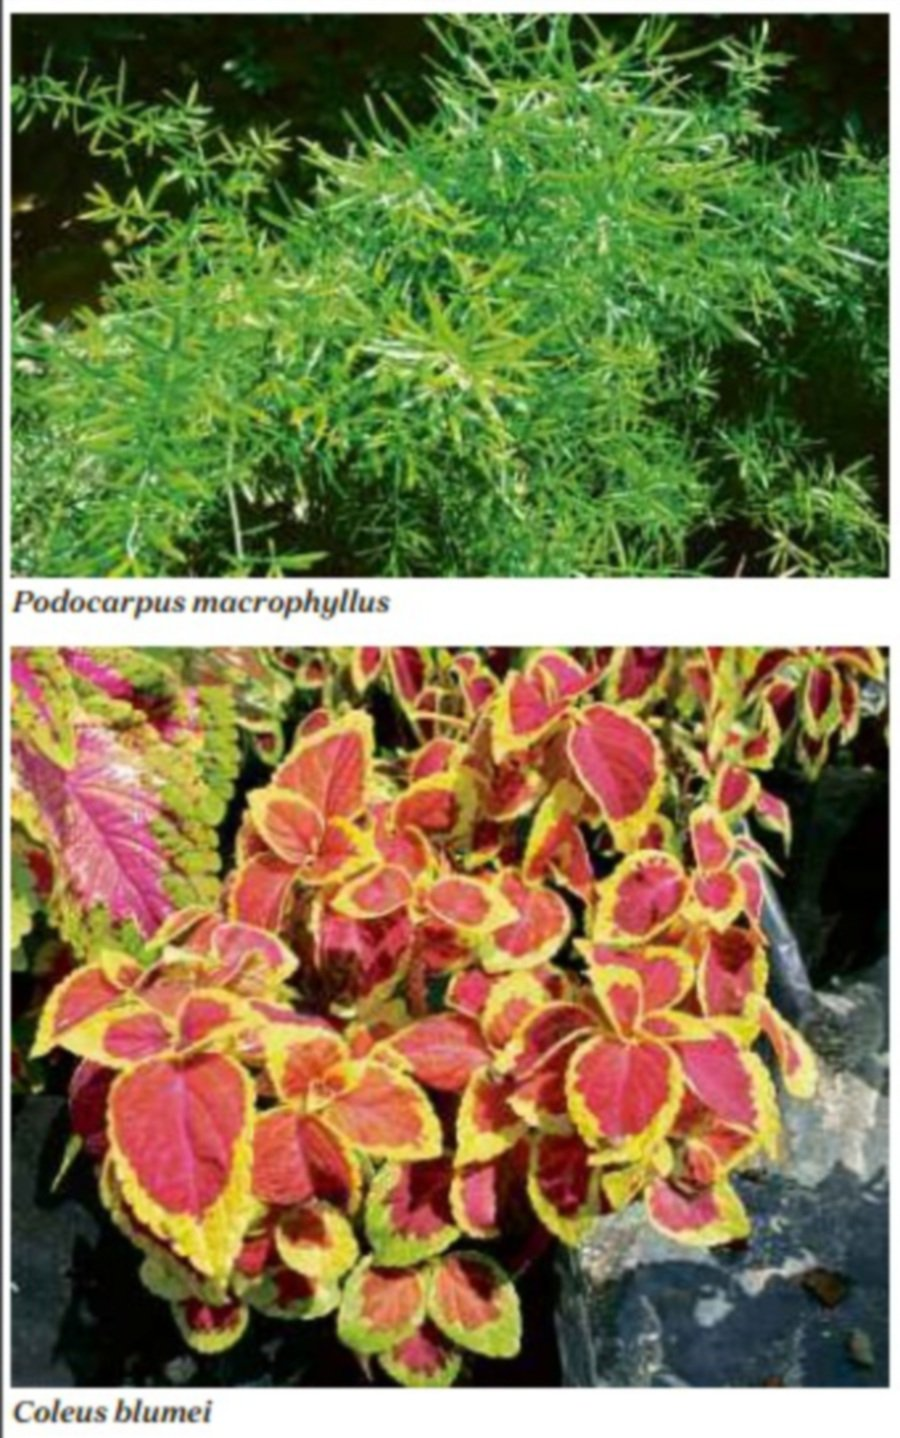 The charm of non-flowering plants | New Straits Times ... on green house plants, purple house plants, blue house plants, lavender house plants, tropical house plants, moss house plants, orange house plants, evergreen house plants, easy to take care of house plants, cacti house plants, flowers house plants, dead house plants, perfect house plants,